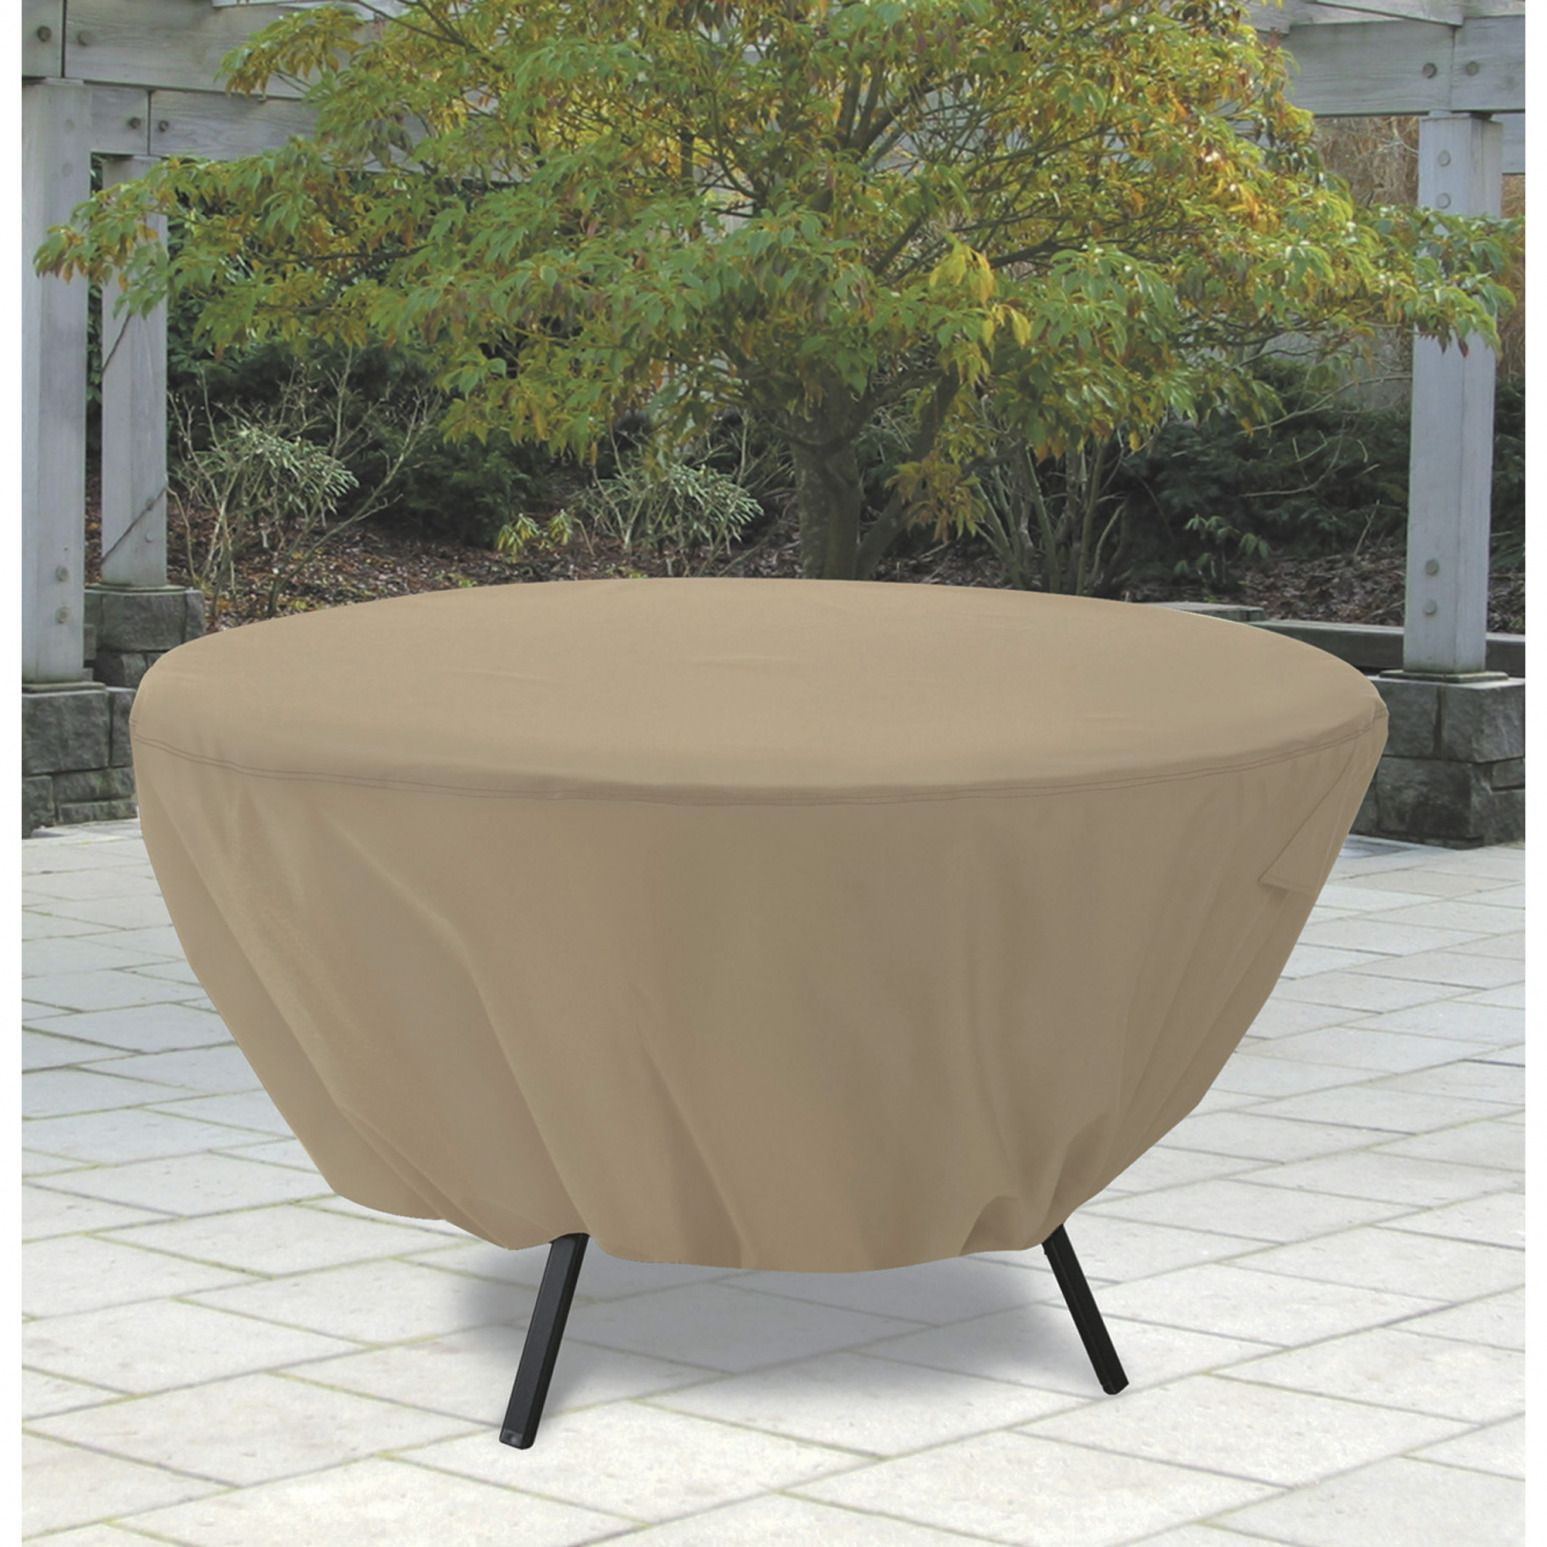 100 60 Round Patio Table Cover Best Office Furniture Check More At Http Livelylighting